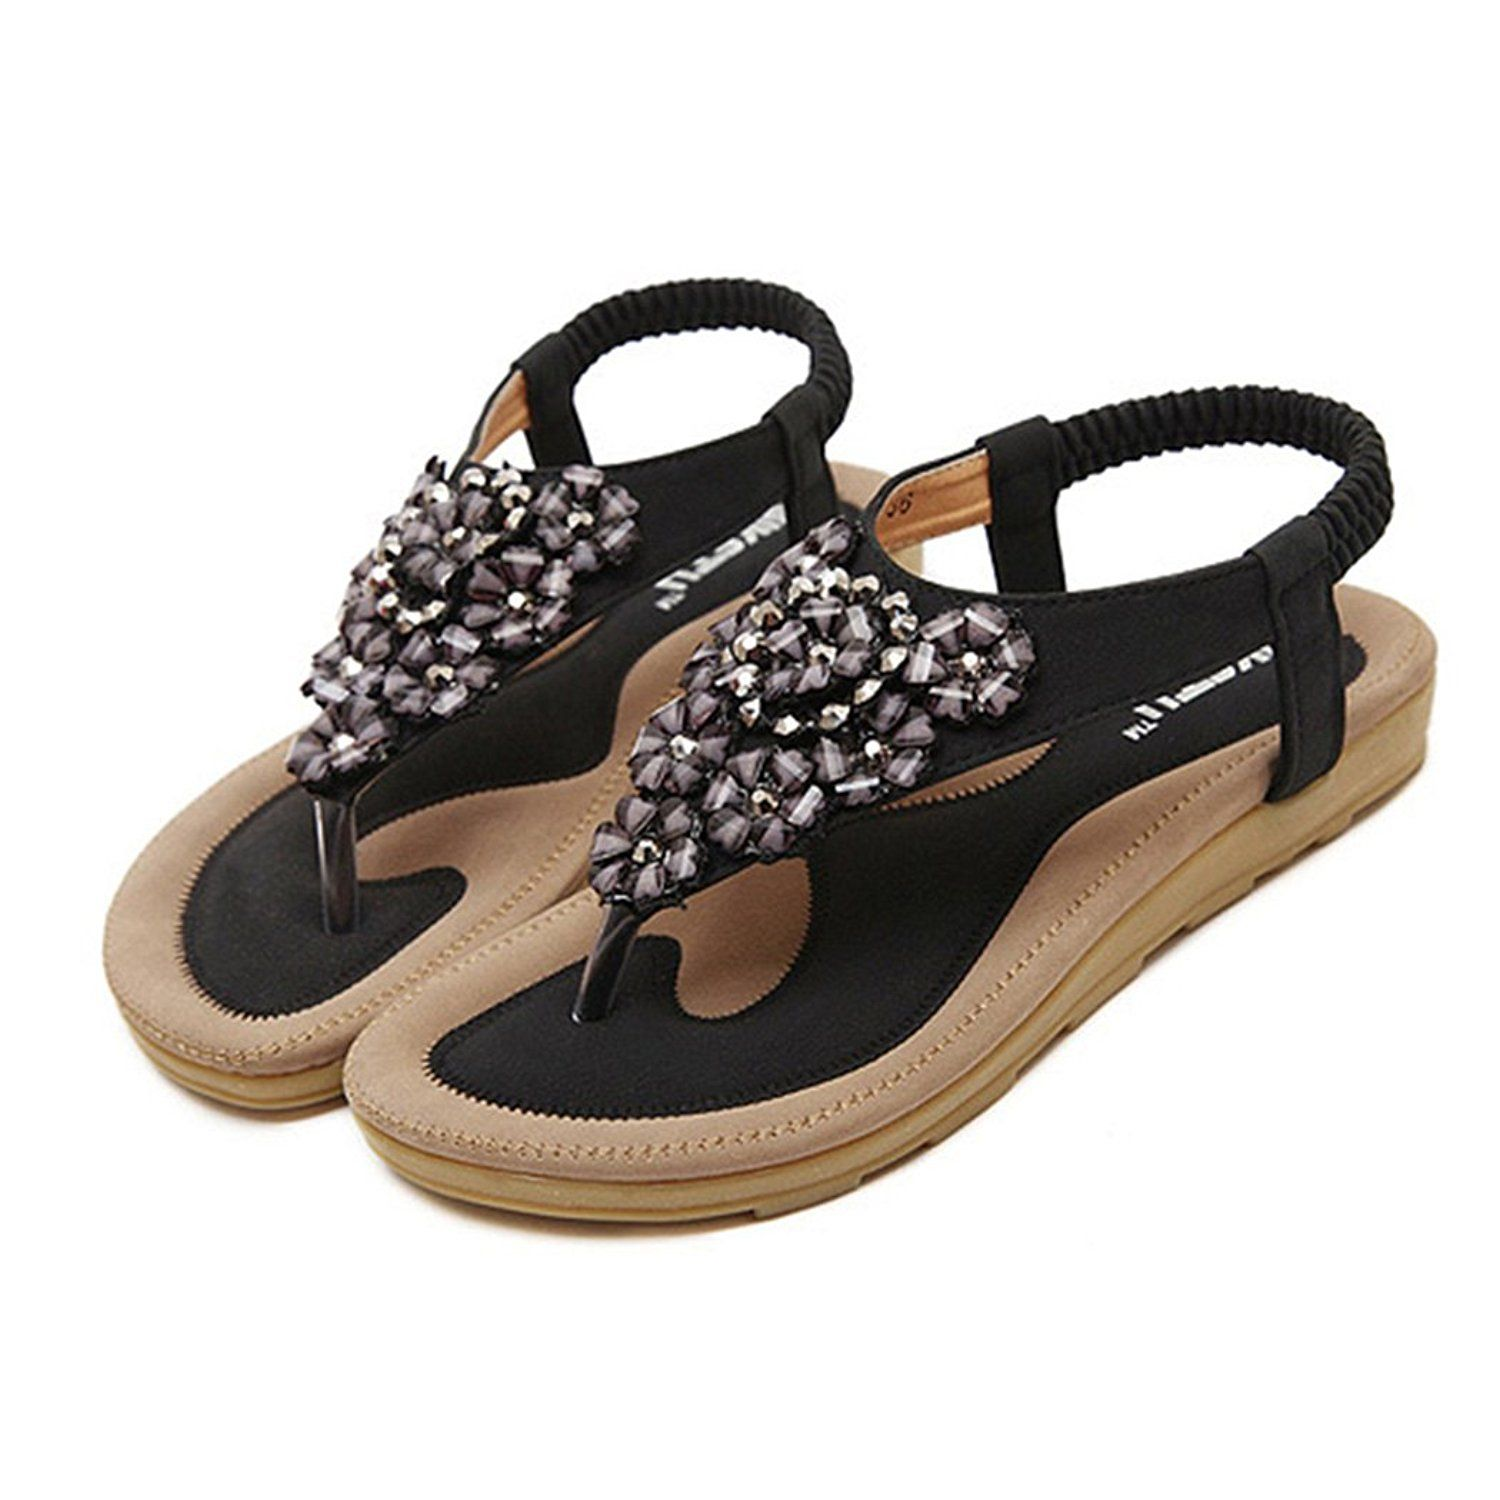 Pin on Sandals Shoes